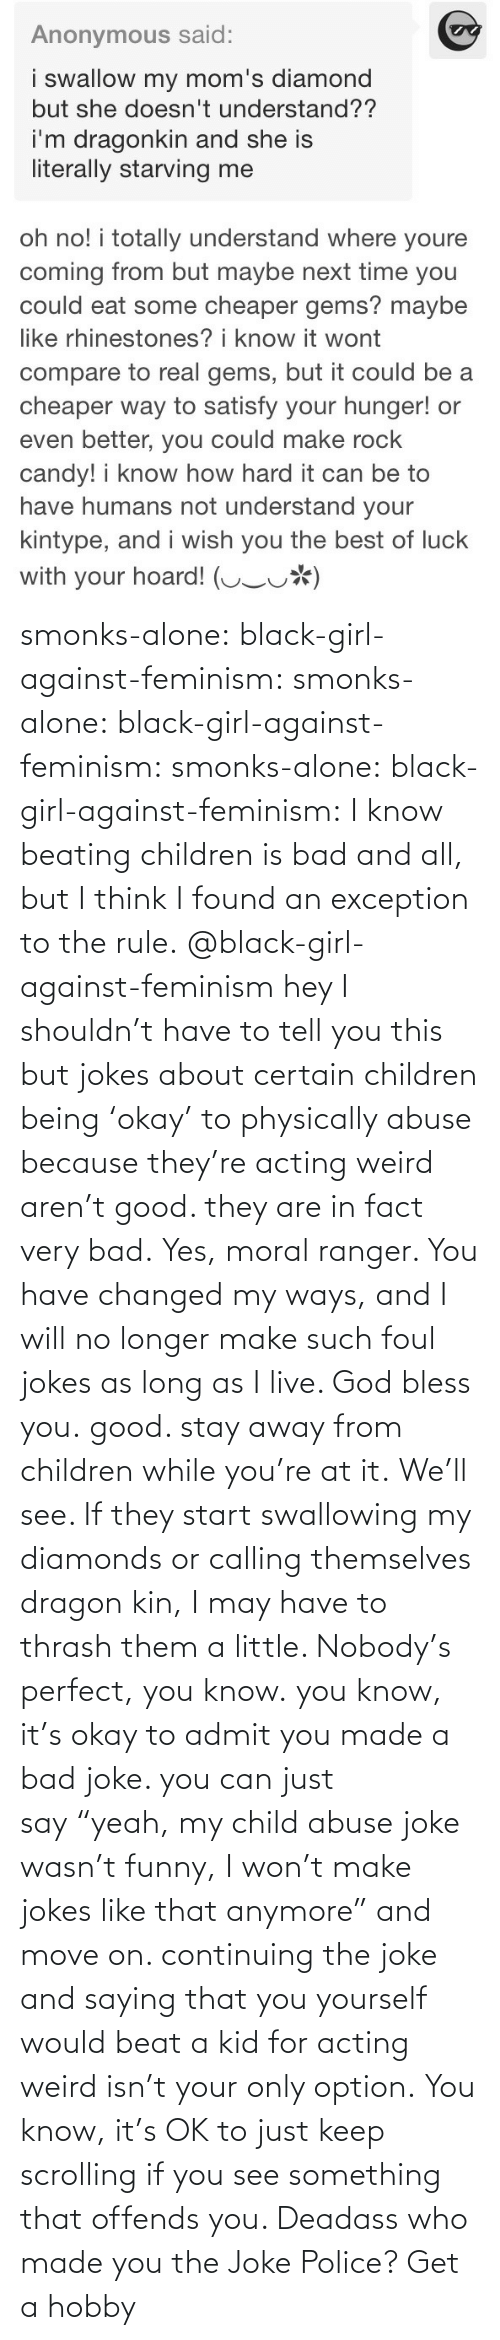 "I Will: smonks-alone:  black-girl-against-feminism: smonks-alone:  black-girl-against-feminism:  smonks-alone:  black-girl-against-feminism: I know beating children is bad and all, but I think I found an exception to the rule. @black-girl-against-feminism hey I shouldn't have to tell you this but jokes about certain children being 'okay' to physically abuse because they're acting weird aren't good. they are in fact very bad.  Yes, moral ranger. You have changed my ways, and I will no longer make such foul jokes as long as I live. God bless you.  good. stay away from children while you're at it.  We'll see. If they start swallowing my diamonds or calling themselves dragon kin, I may have to thrash them a little. Nobody's perfect, you know.  you know, it's okay to admit you made a bad joke. you can just say ""yeah, my child abuse joke wasn't funny, I won't make jokes like that anymore"" and move on. continuing the joke and saying that you yourself would beat a kid for acting weird isn't your only option.   You know, it's OK to just keep scrolling if you see something that offends you. Deadass who made you the Joke Police? Get a hobby"